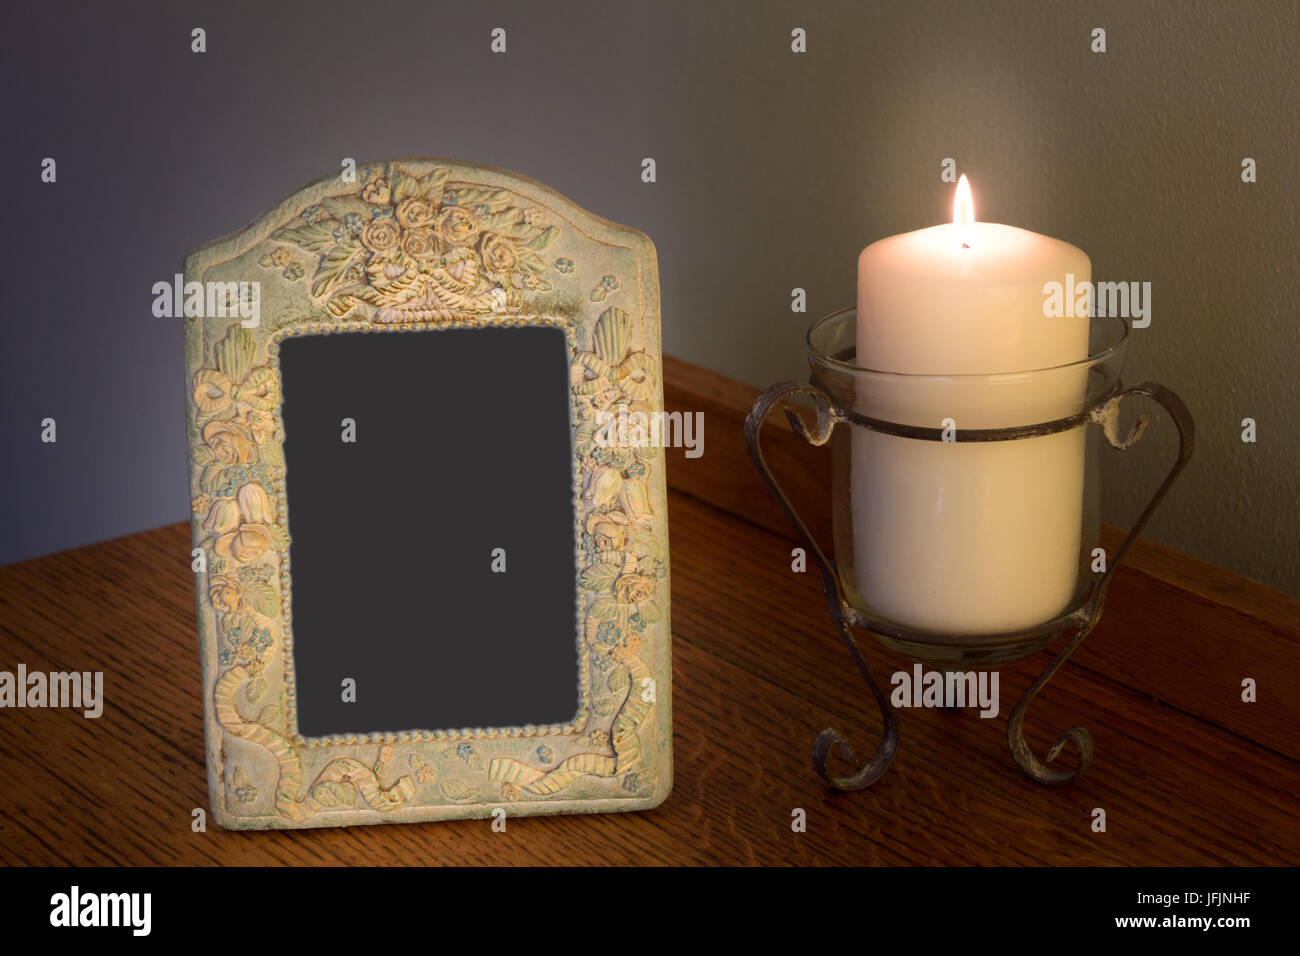 Candle And Photo Frame Stockfotos & Candle And Photo Frame Bilder ...